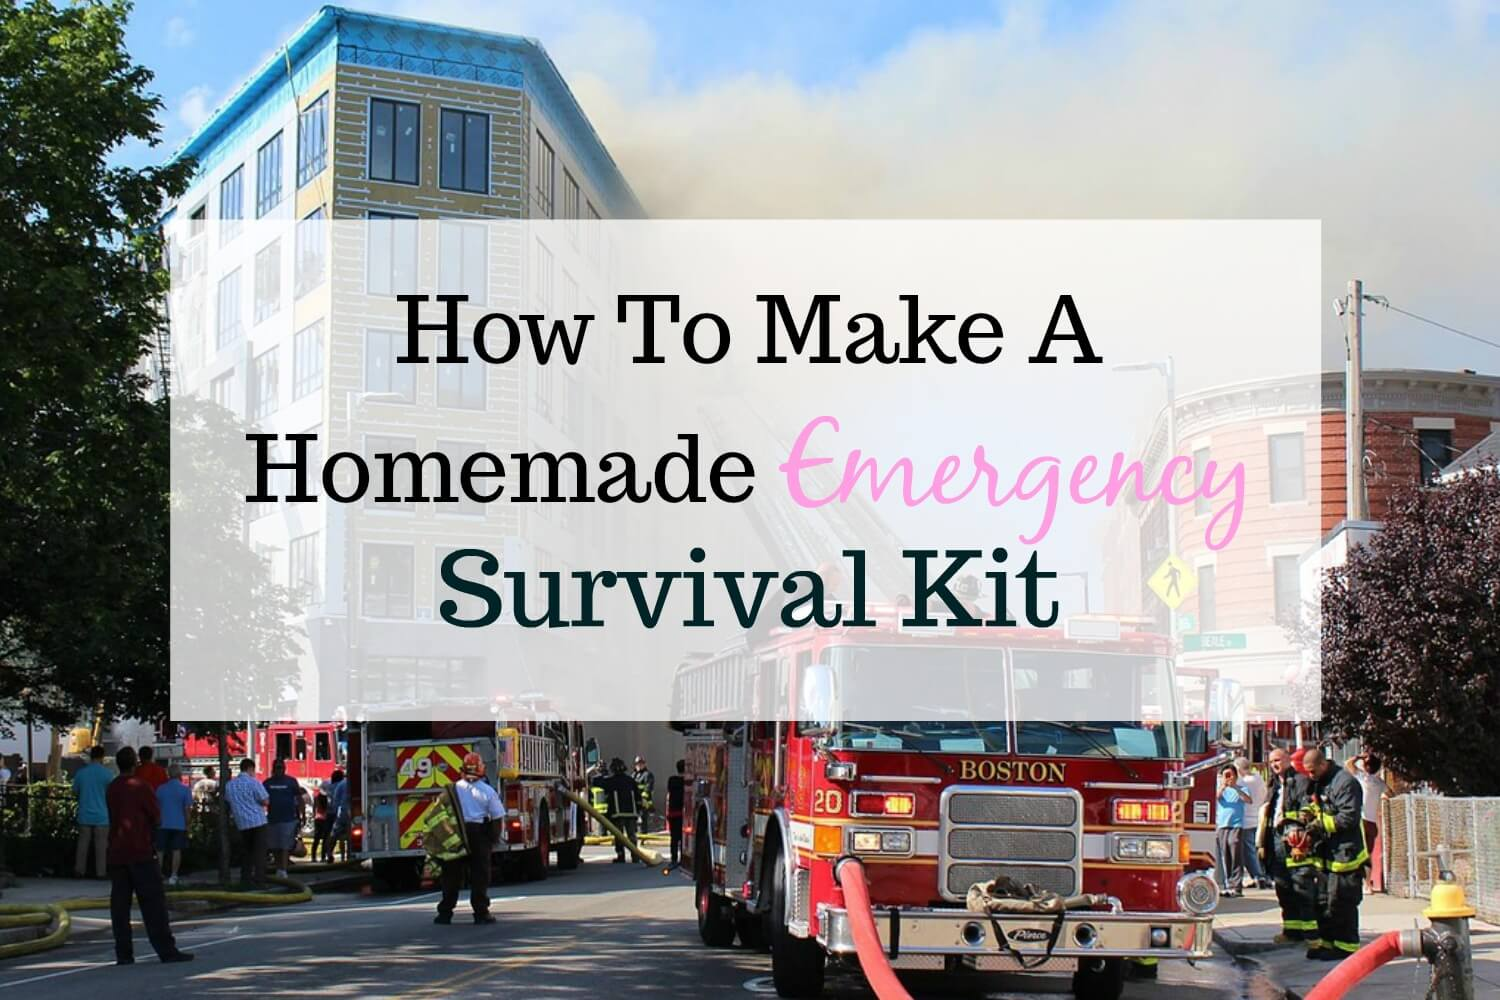 How To Make A Homemade Emergency Survival Kit